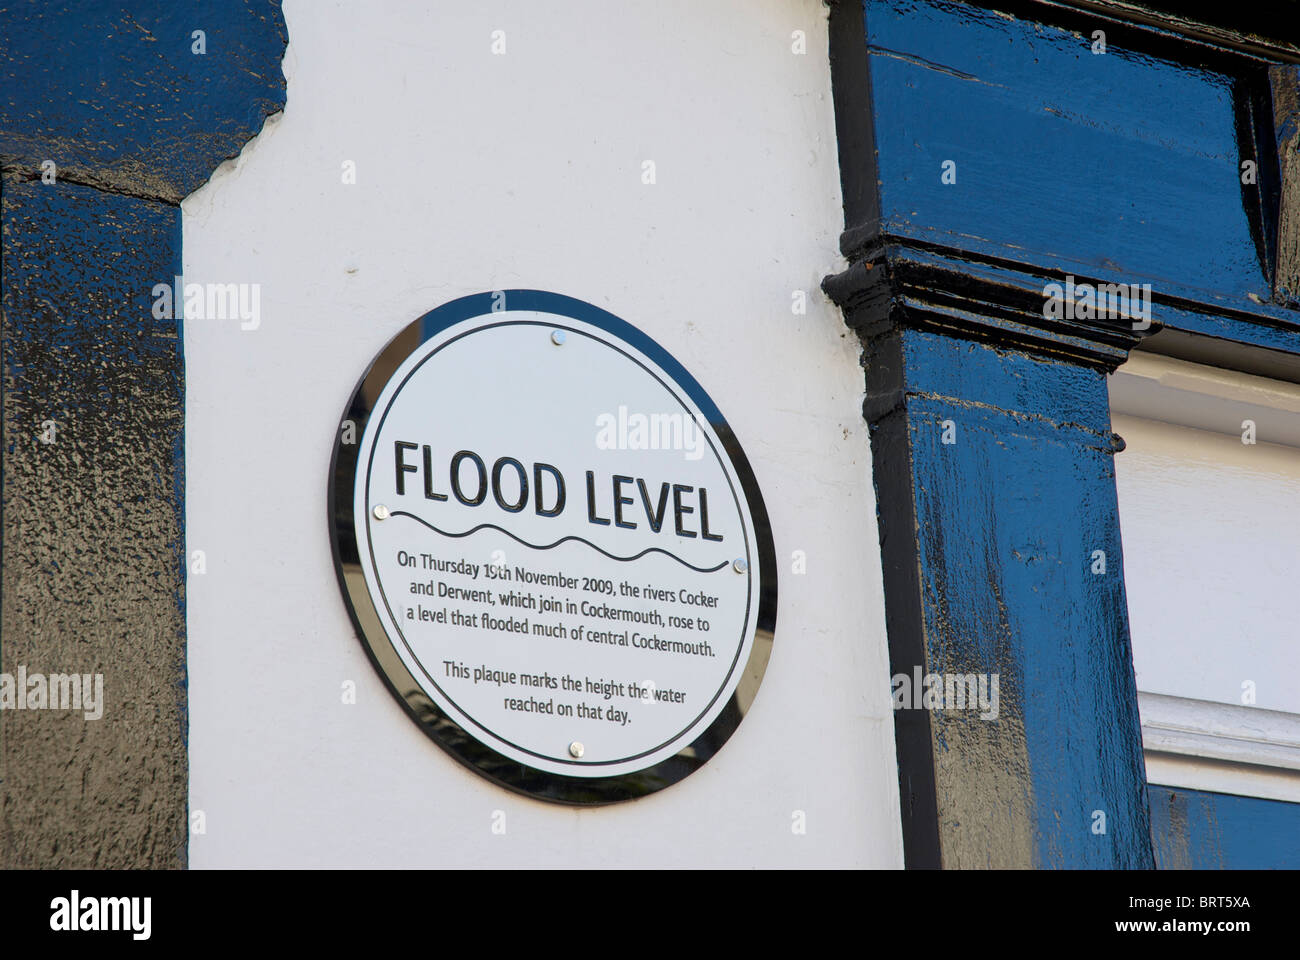 Plaque showing the height of the floodwaters, in November 2009, Cockermouth, West Cumbria, England UK - Stock Image